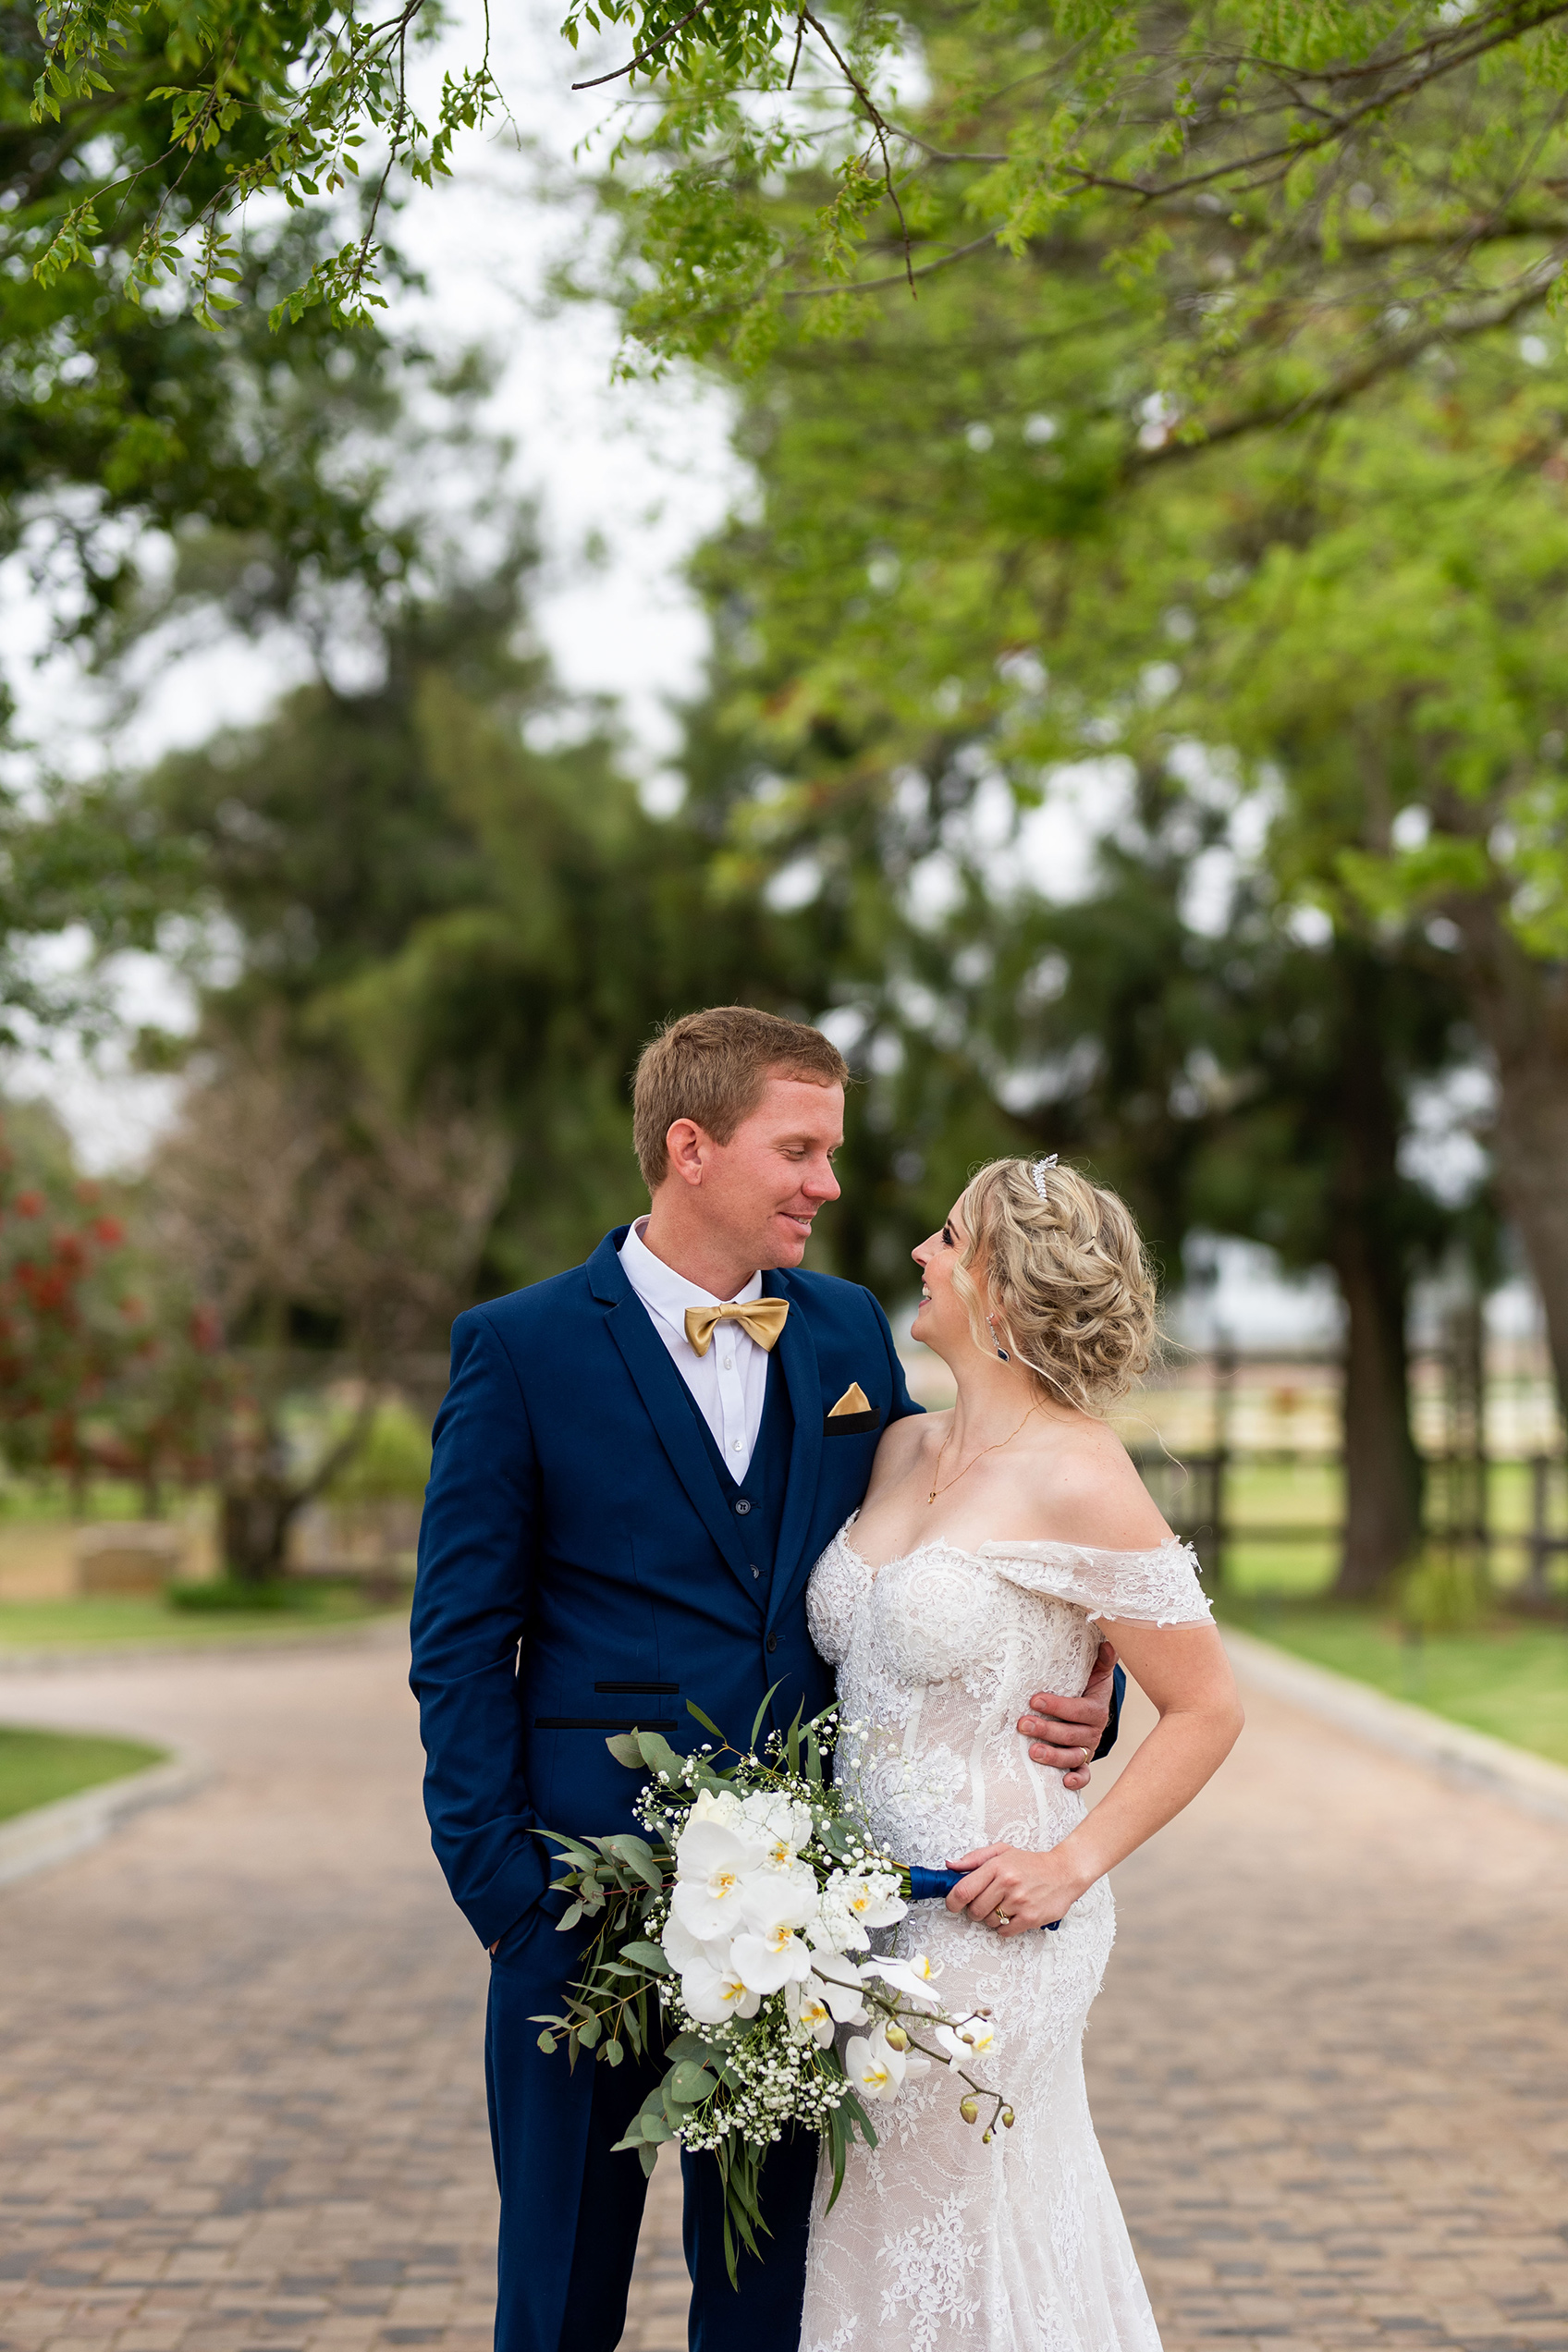 Elri Photography - Photographers Cape Town